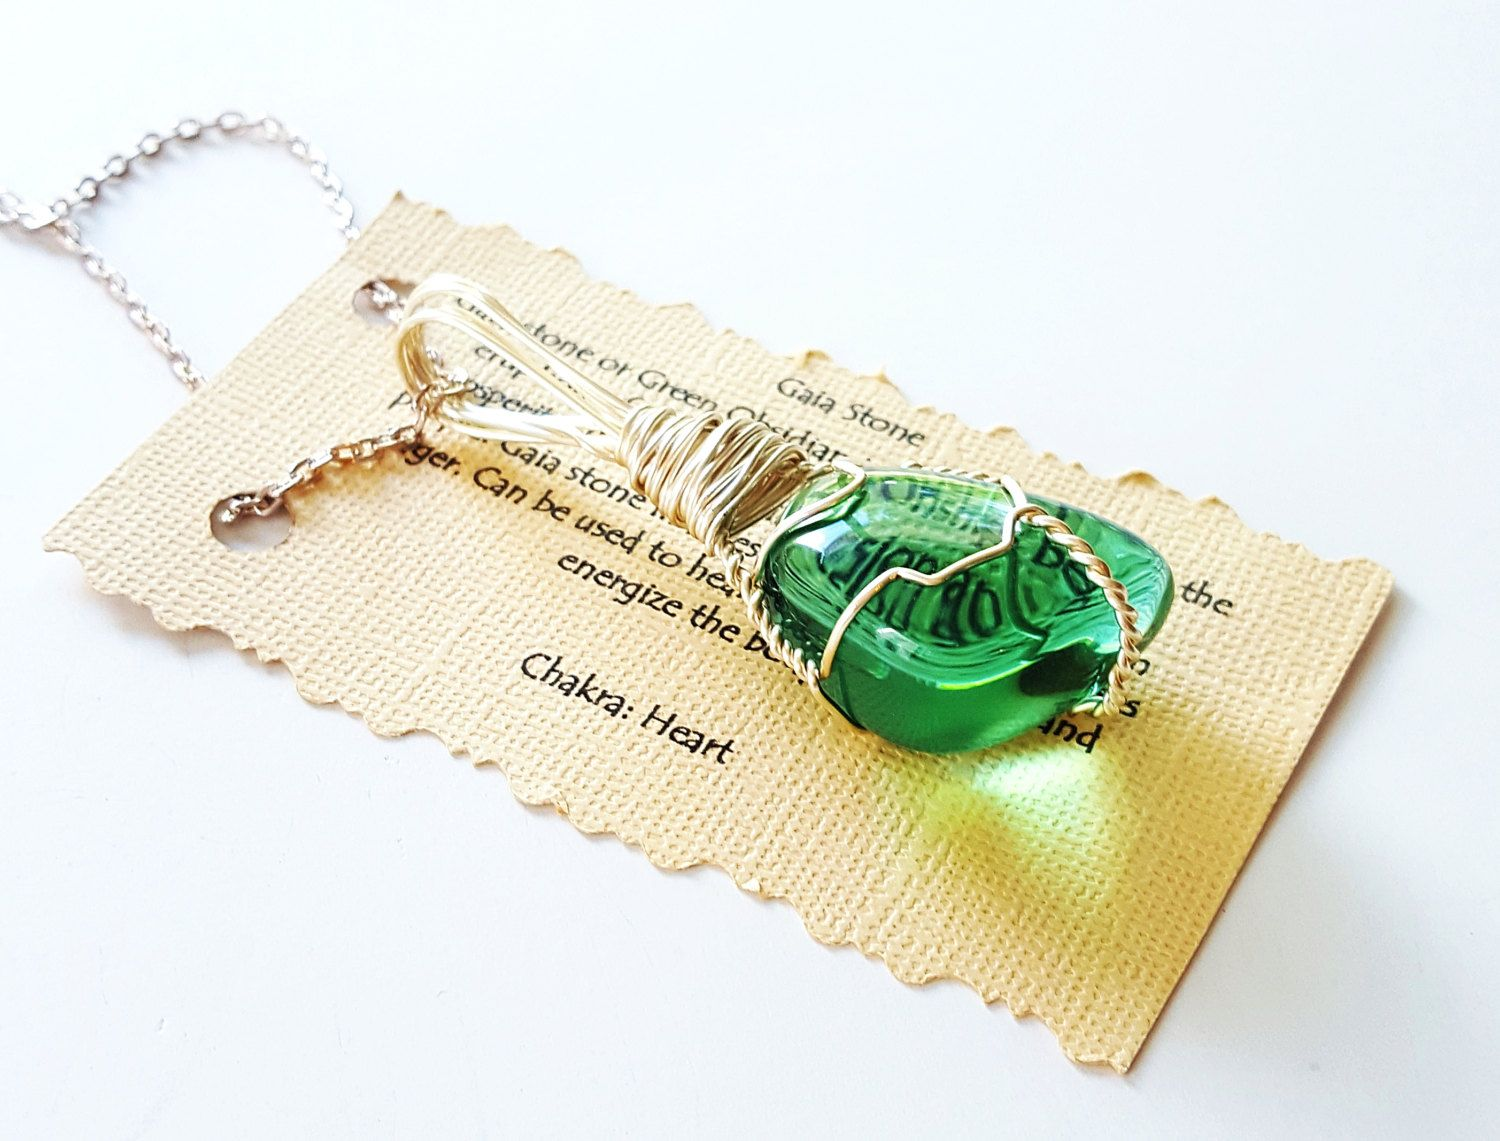 Wire Wrapped GAIA Stone (Green Obsidian)Positive Healing Reiki Energy Crystal Pendant Necklace Boho Chic Magic Wicca Gypsy Jewelry GS4916-3 by TheStoneFairyShop on Etsy